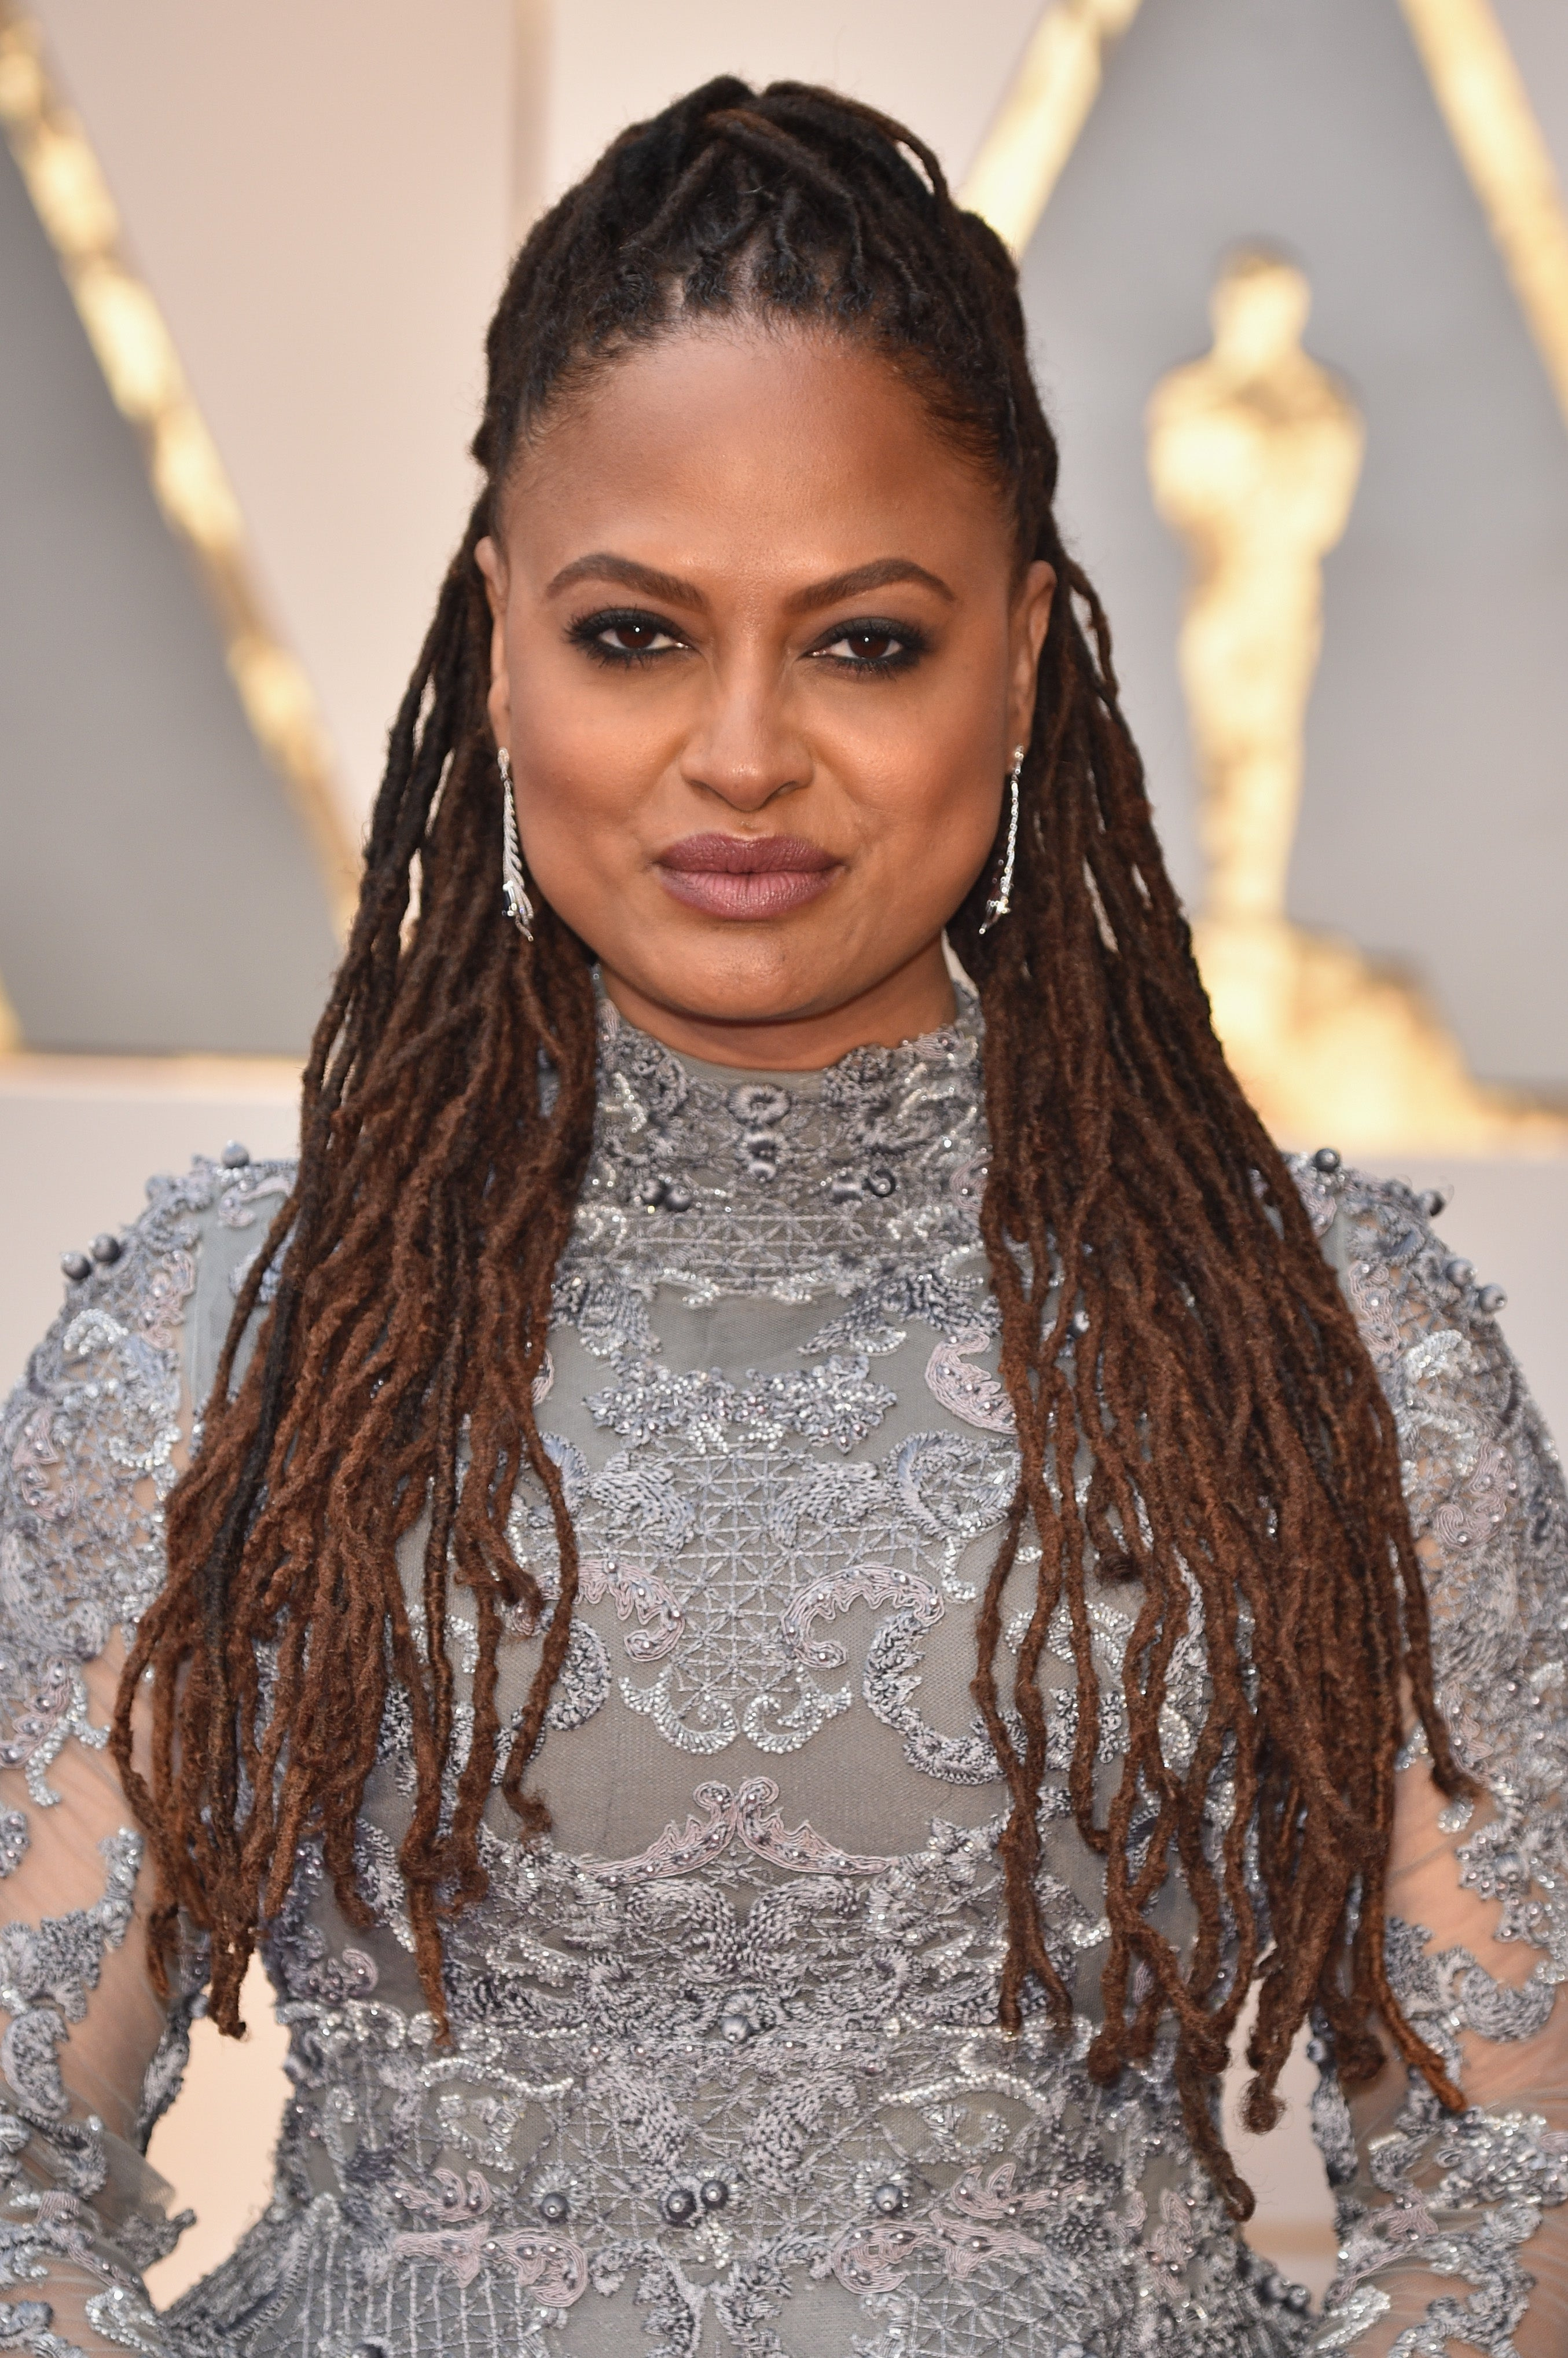 Ava DuVernay Wears Gown By Lebanese Designer at The Oscars Because She's Woke AF